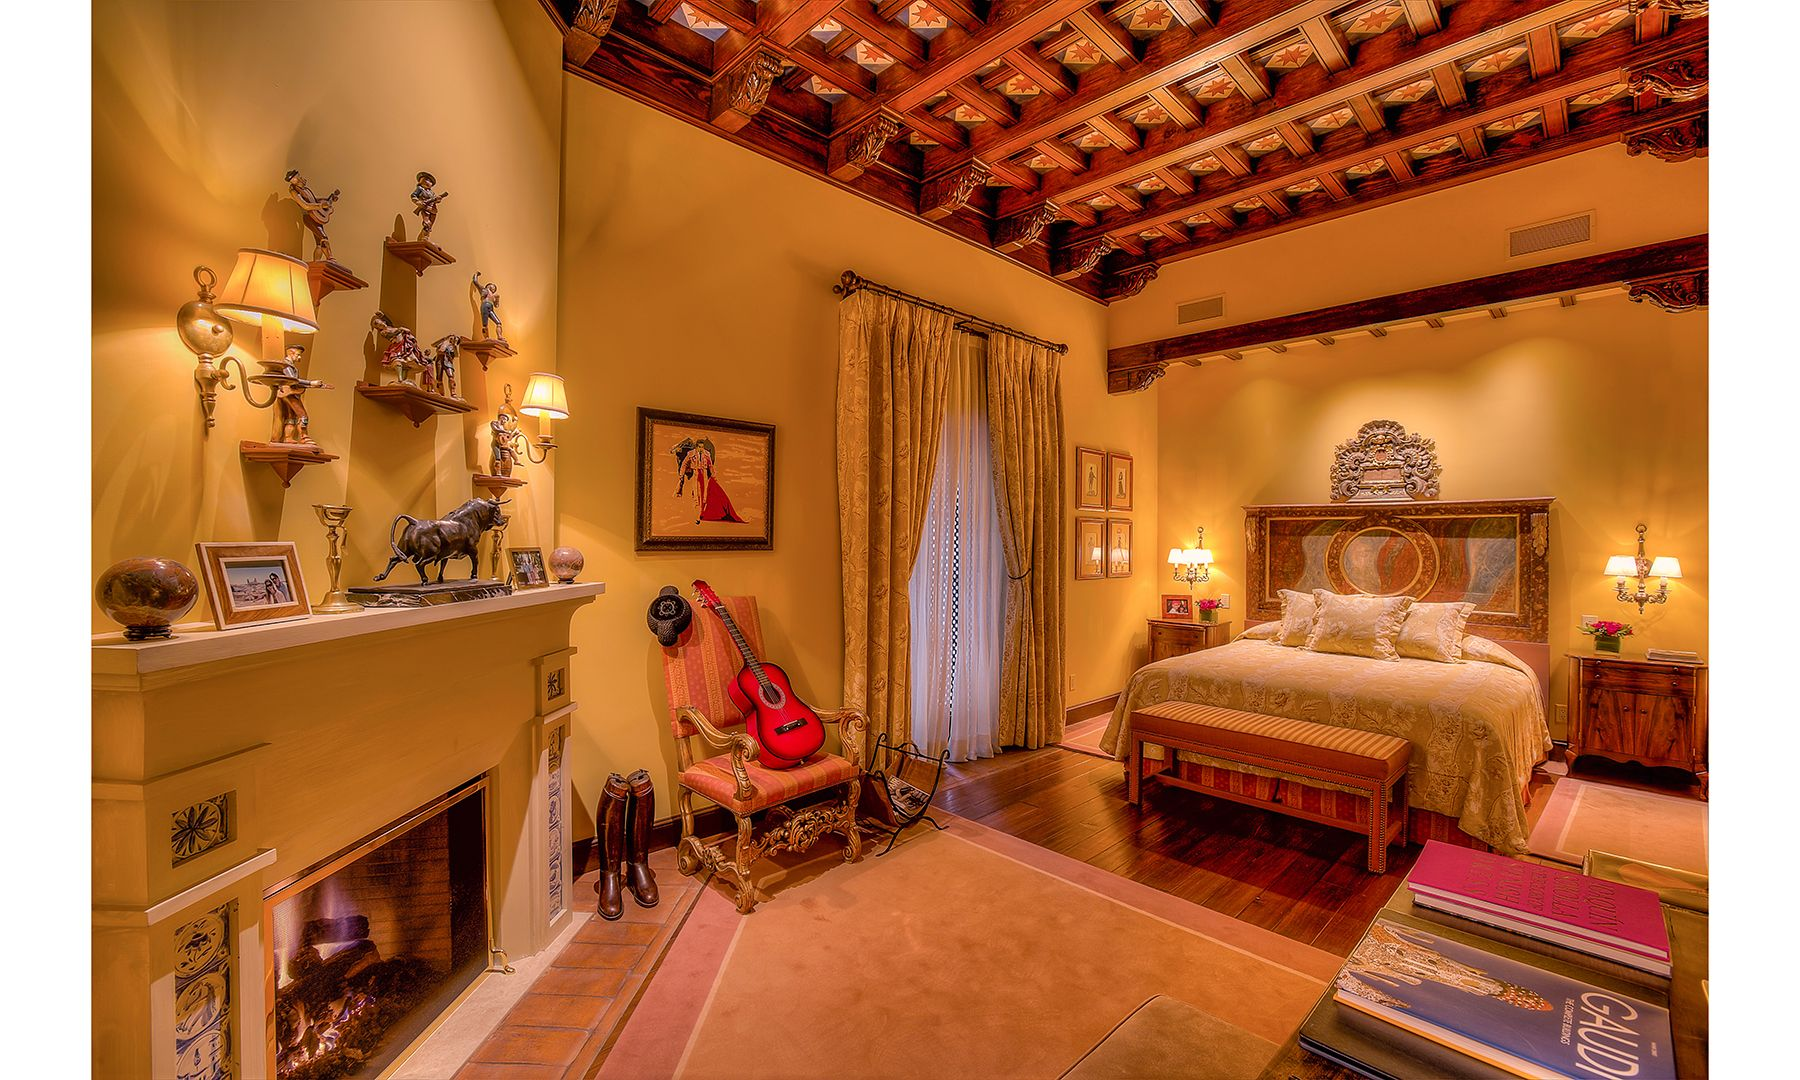 Pictures Hacienda De La Paz 53 Million Mansion Dujour Interior Design Styles Spanish Interior Design Spanish Interior